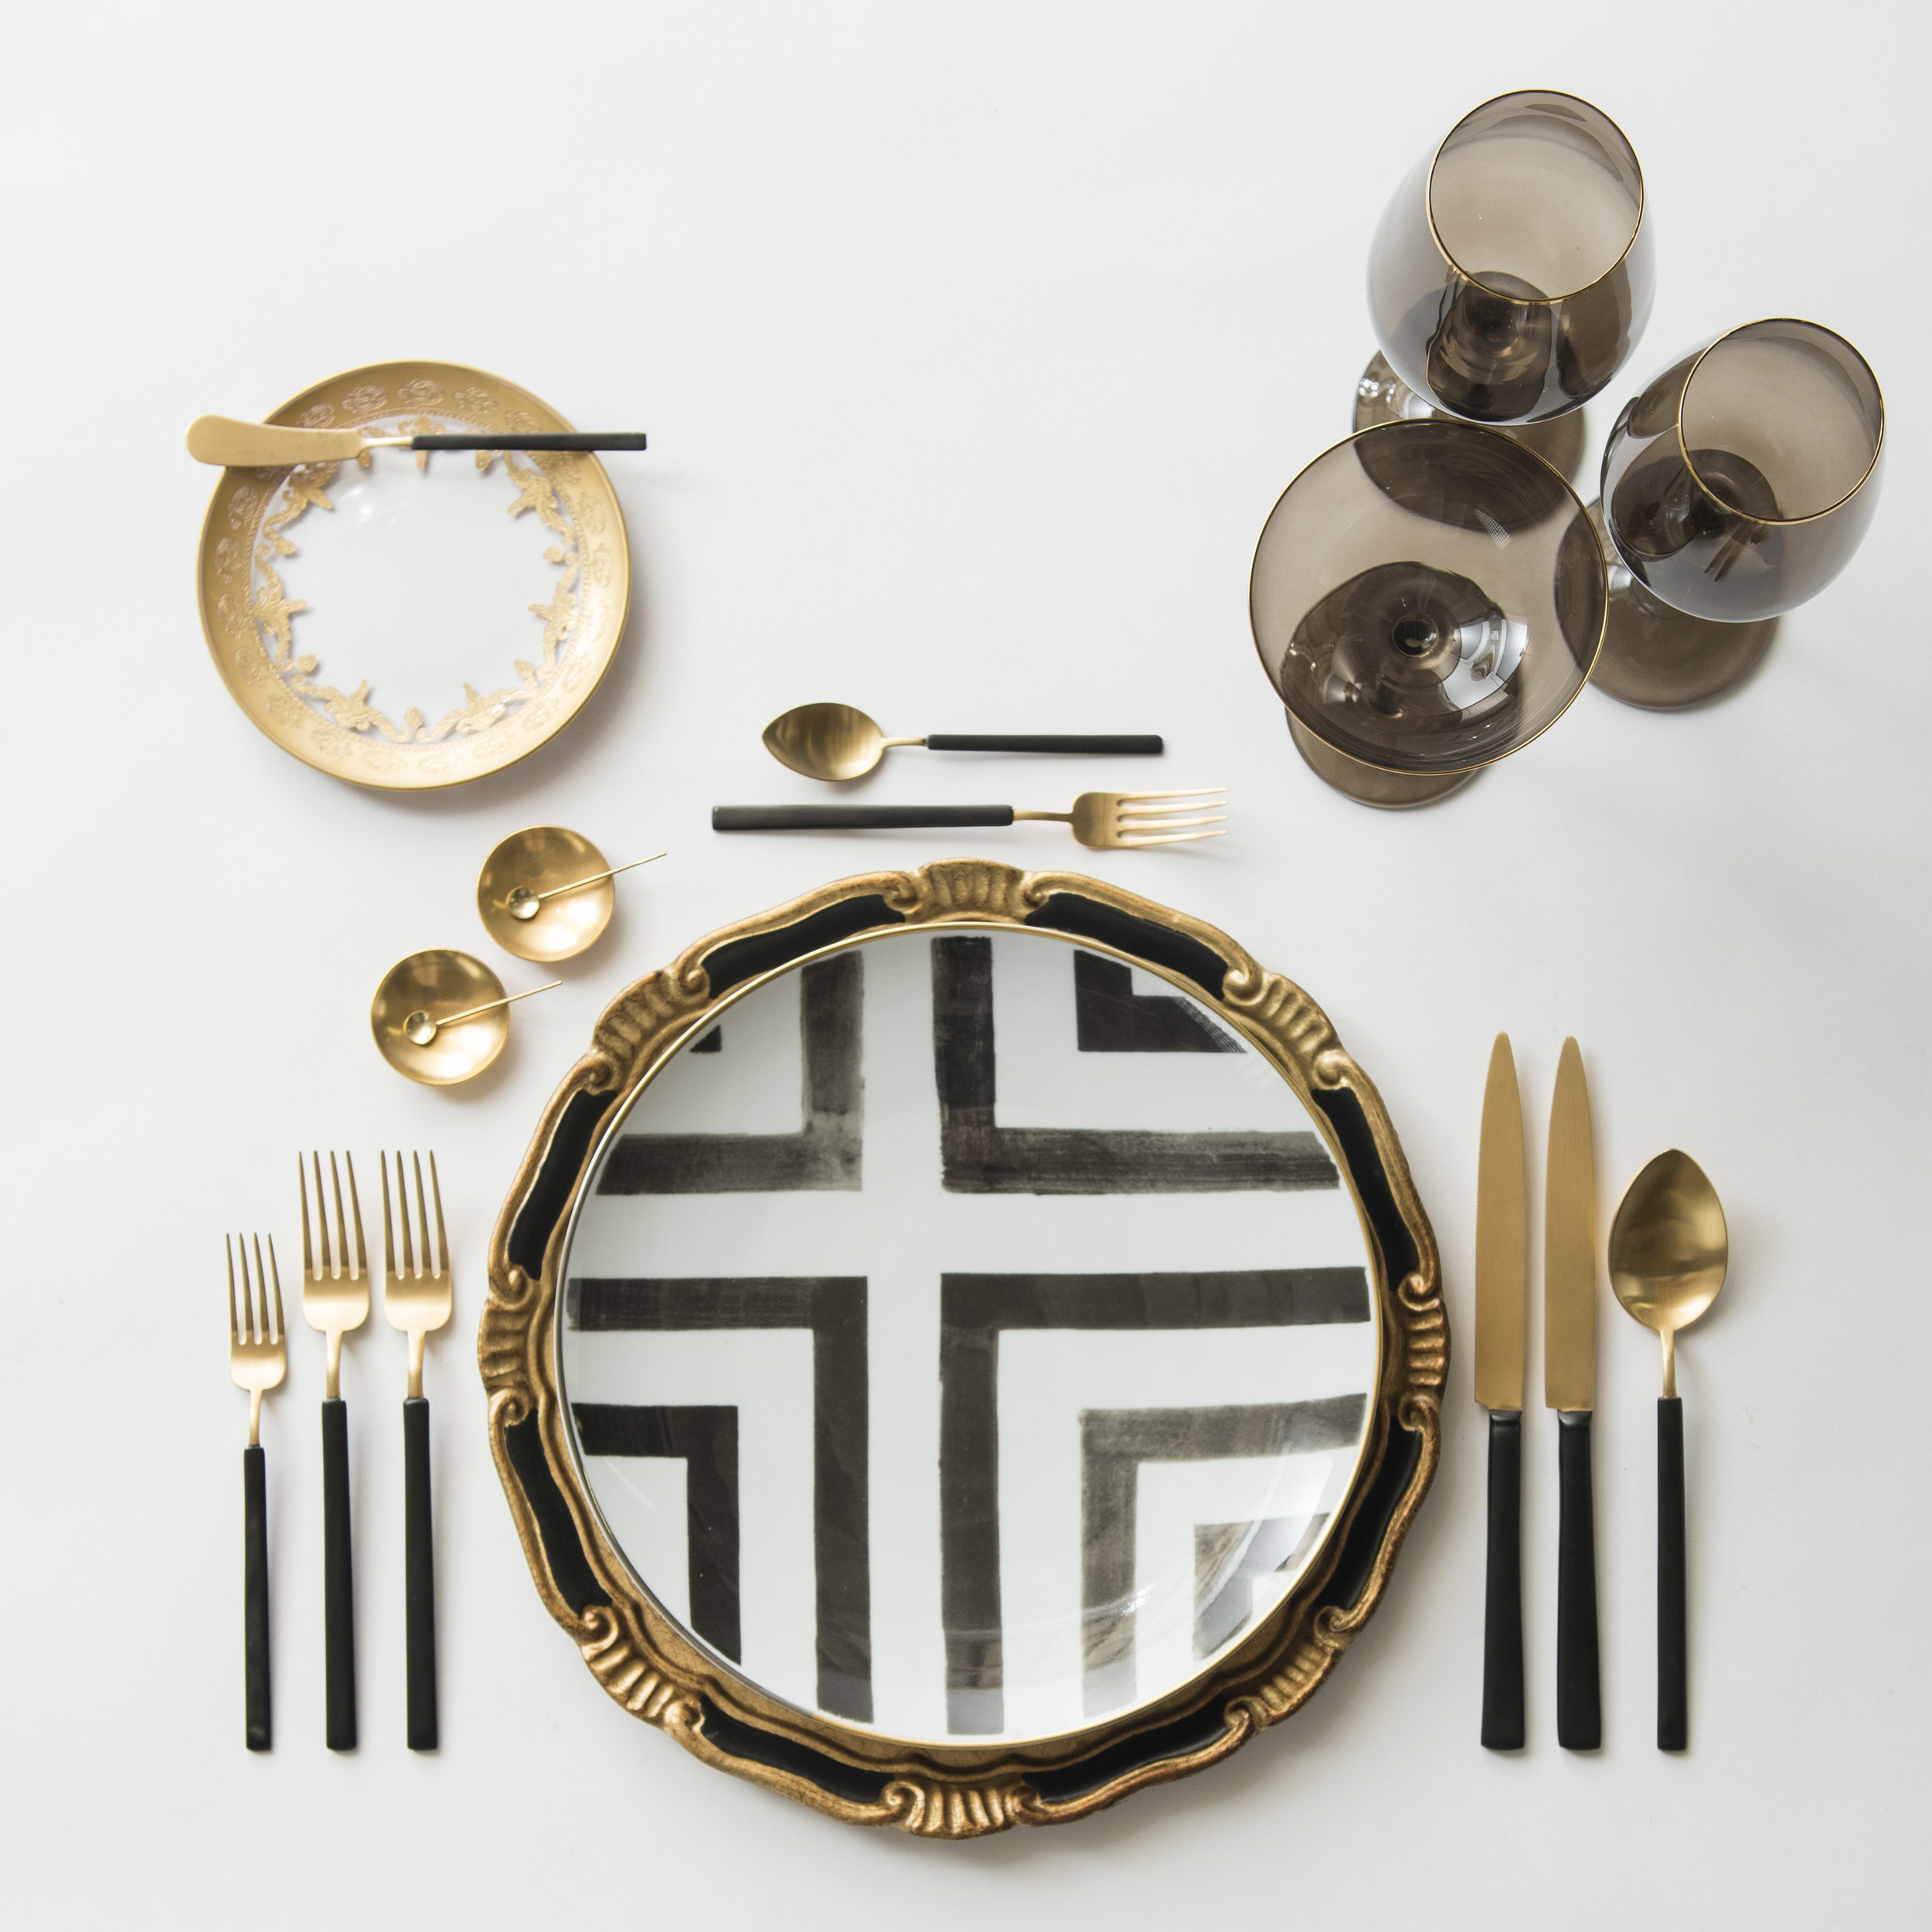 RENT: Florentine Chargers in Black/Gold + Christian Lacroix Sol Y Sombra Dinnerware + Versailles Glass Dinnerware in 24k Gold + Axel Flatware in Matte 24k Gold/Black + Bella 24k Gold Rimmed Stemware in Smoke + 14k Gold Salt Cellars + Tiny Gold Spoons   SHOP:  Bella 24k Gold Rimmed Stemware in Smoke + 14k Gold Salt Cellars + Tiny Gold Spoons